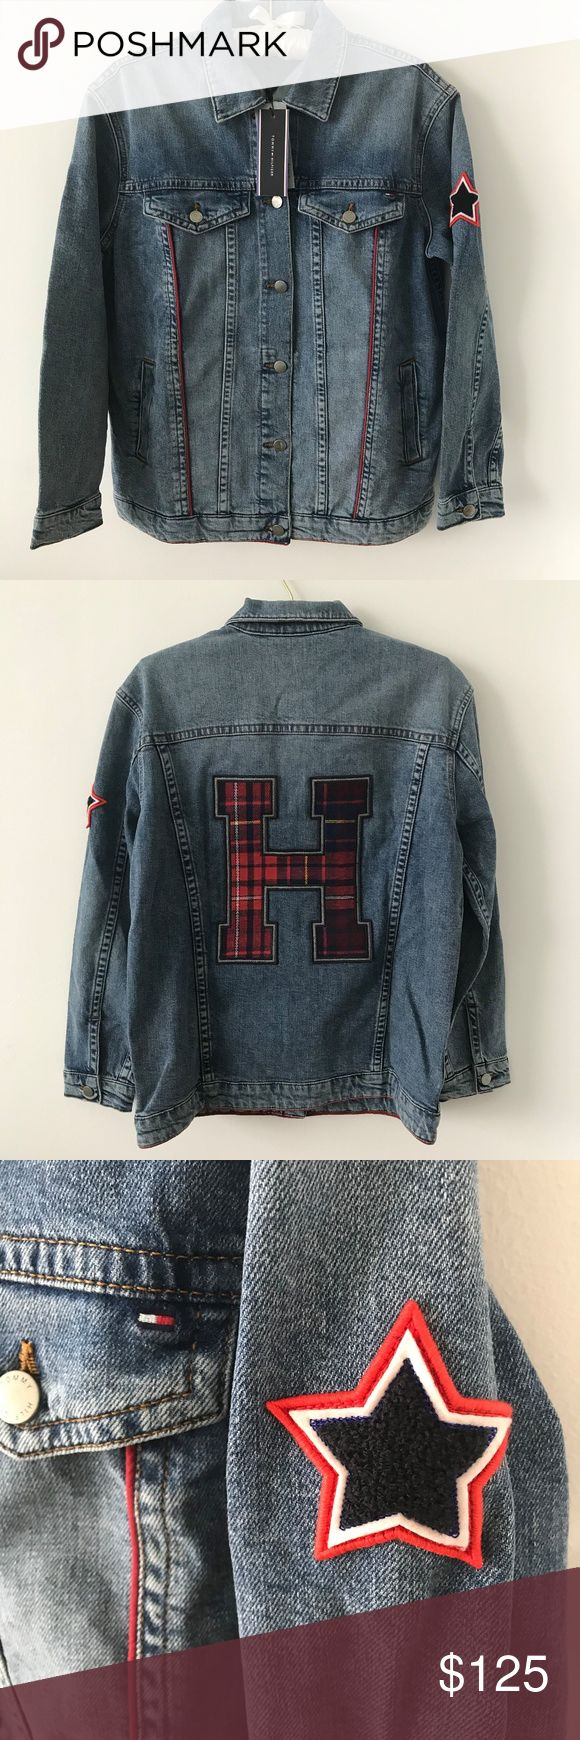 """Tommy Hilfiger Patched Boyfriend Jean Jacket Ultra cool women's jean jacket by Tommy Hilfiger. Iconic patchwork and a 90's inspired fit for a touch of rock and roll.   Brand new with tags. Originally $225 retail price (shown).  Size 6.  21"""" from pit to pit. 25"""" in length.  98% cotton; 2% elastane. Tommy Hilfiger Jackets & Coats Jean Jackets"""